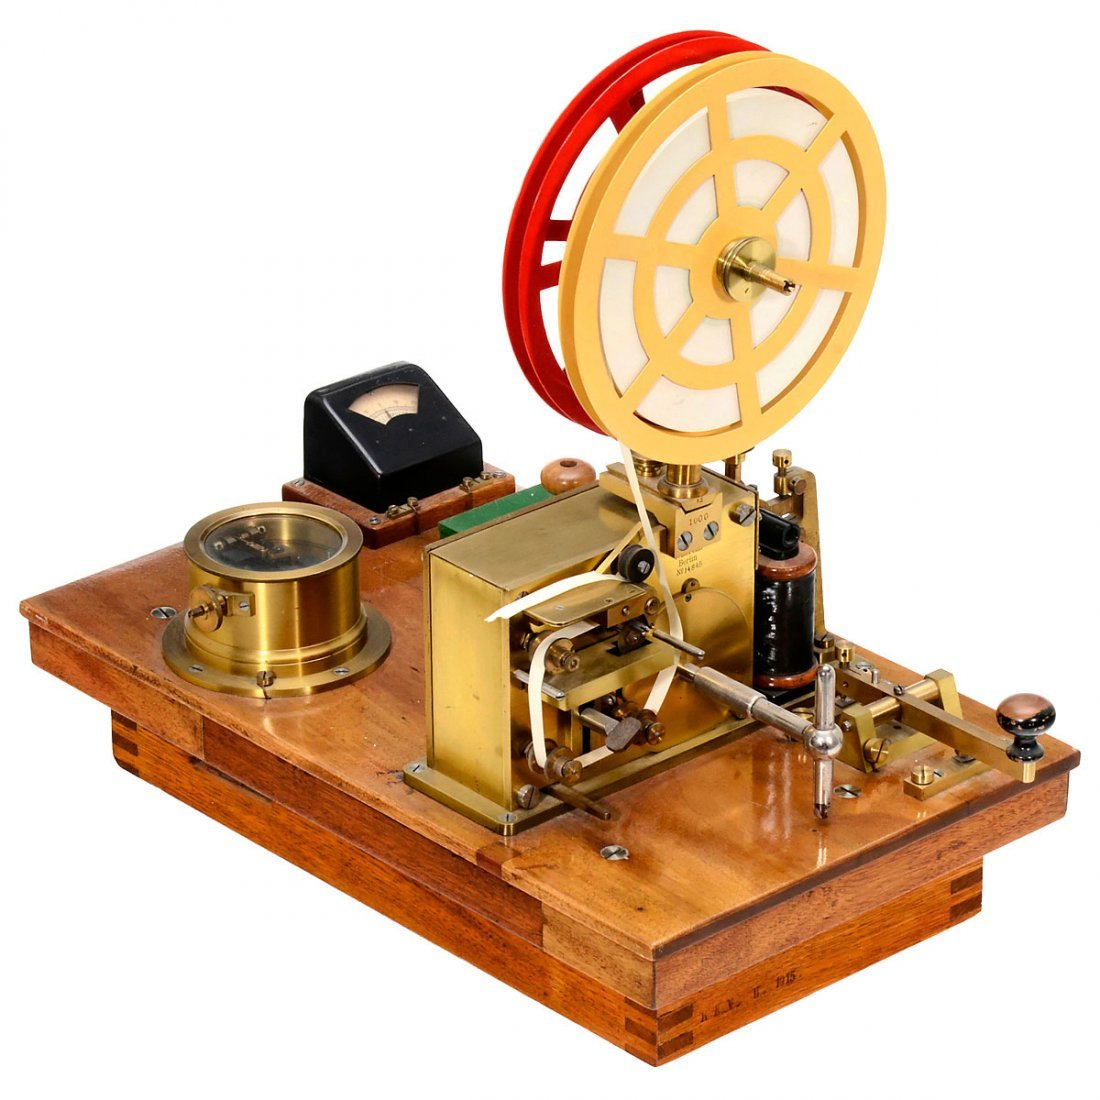 German Telegraph System by Lorenz, c. 1890